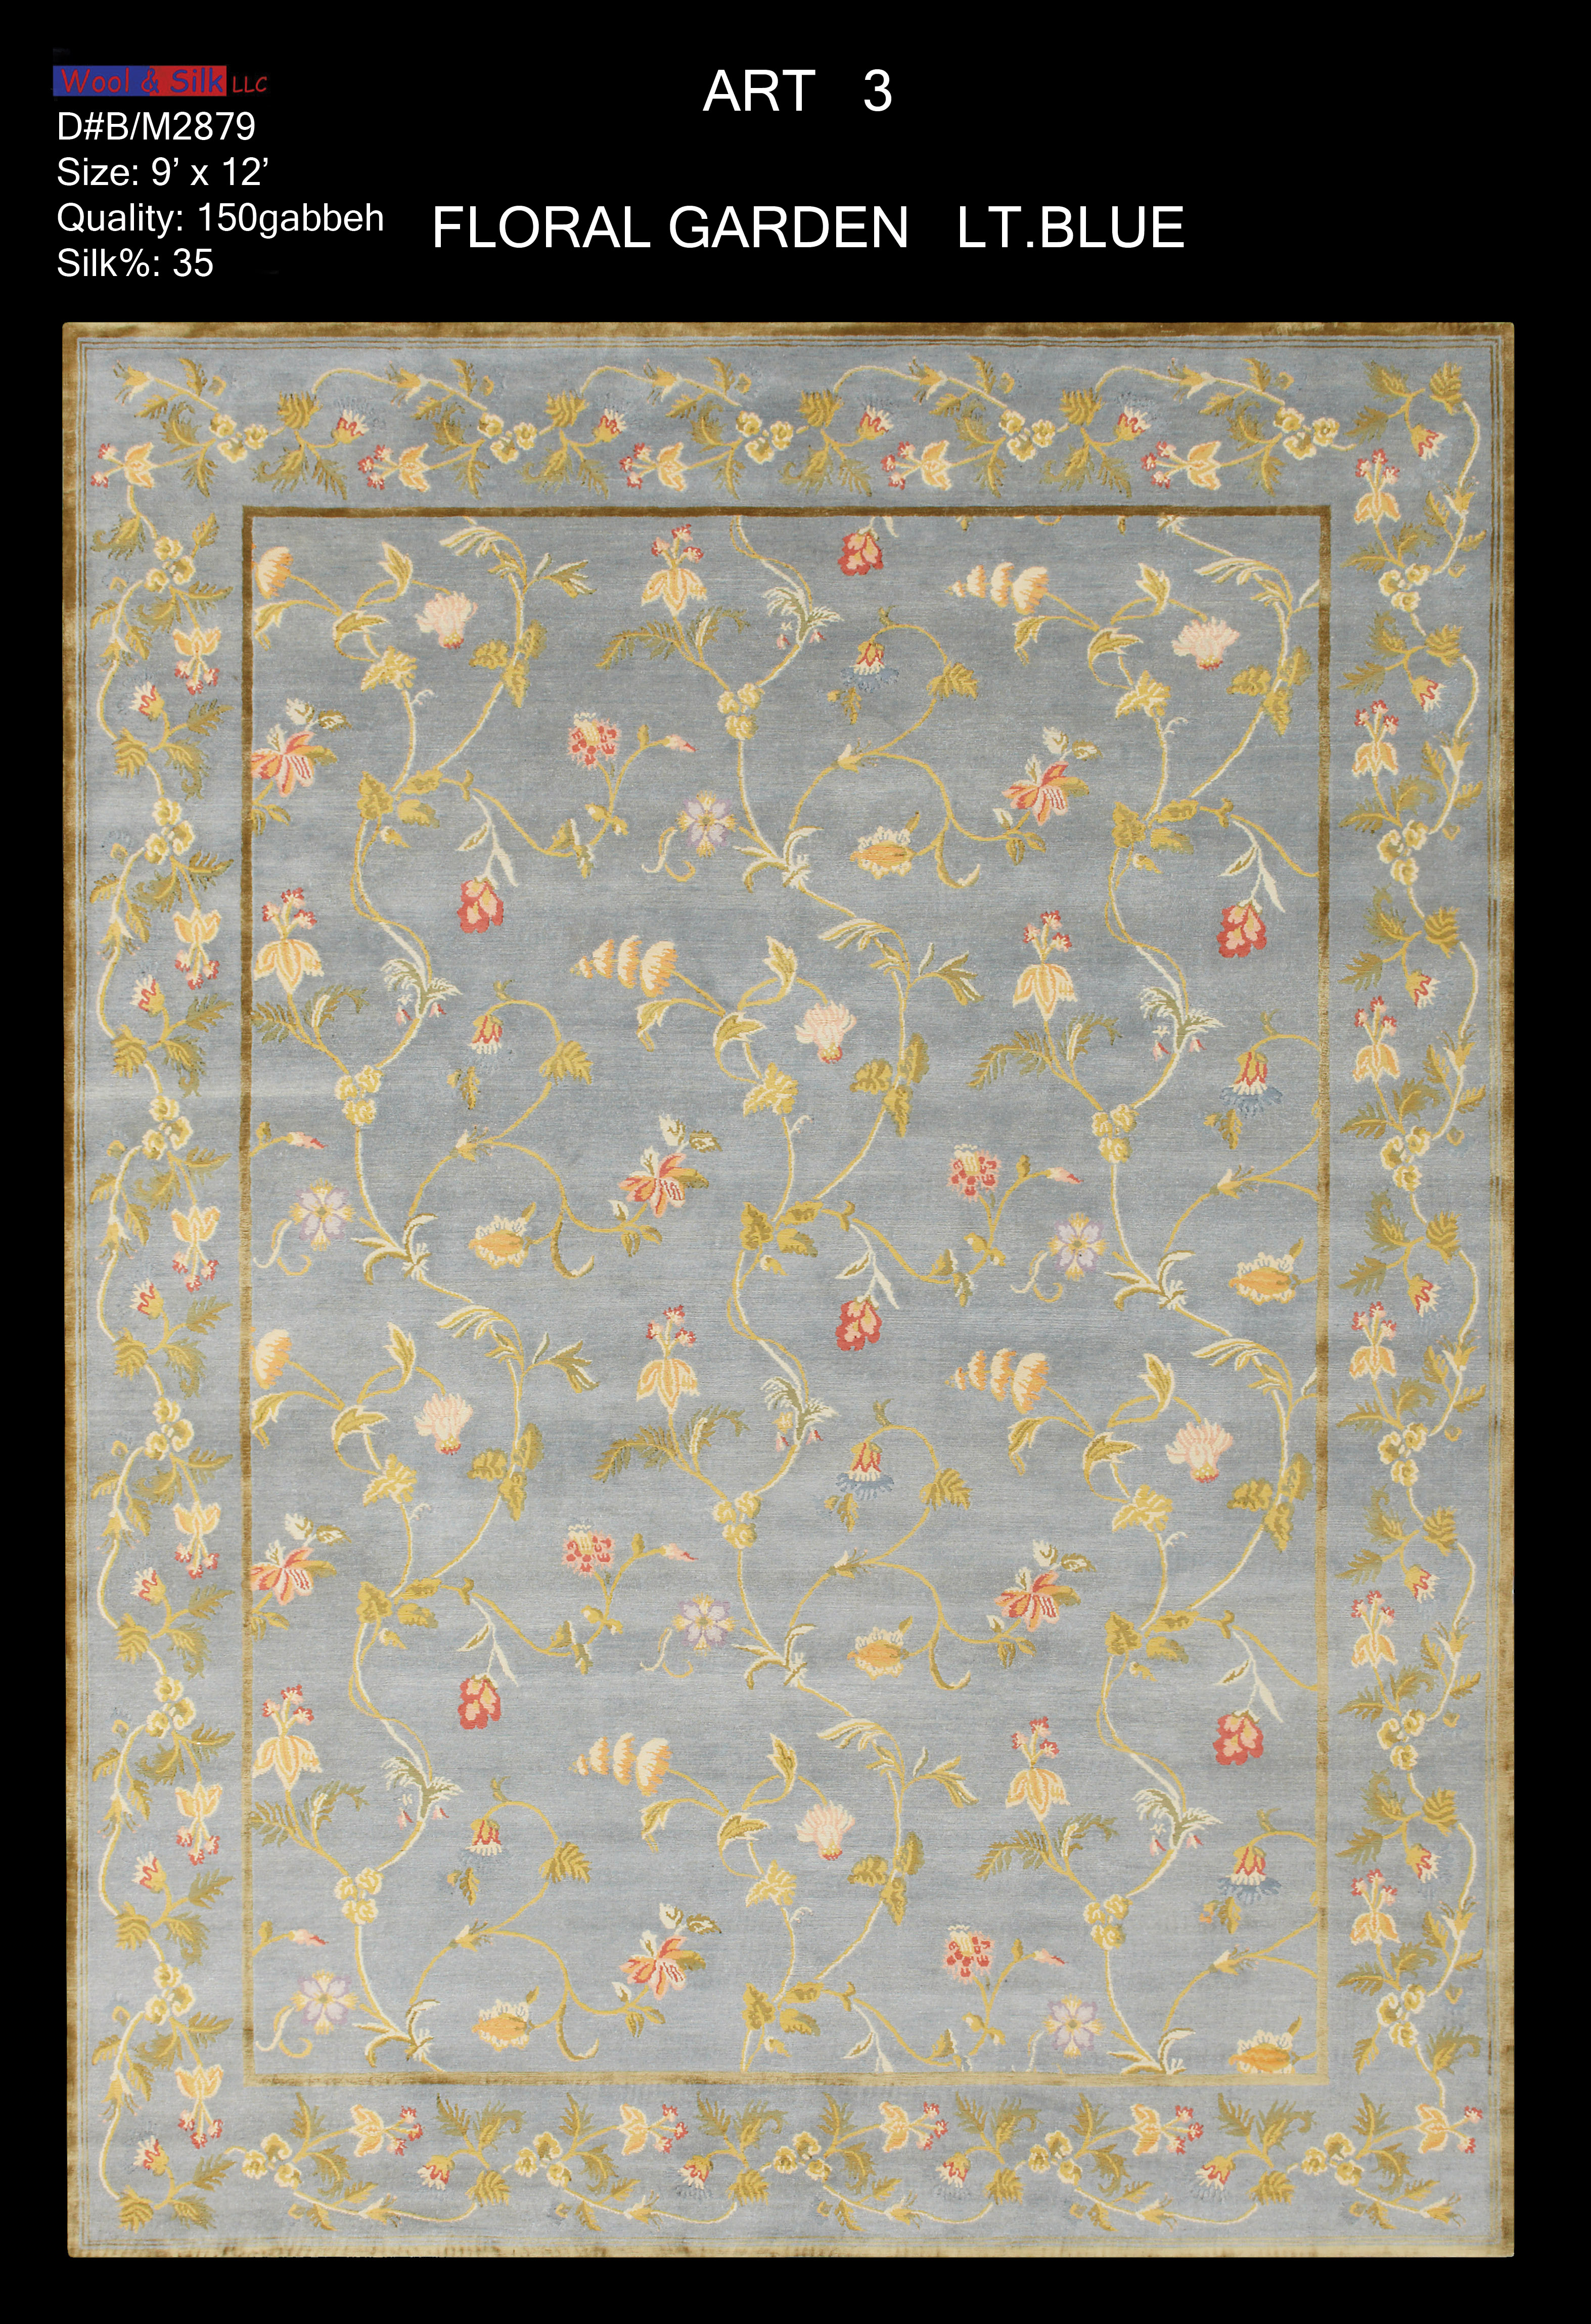 Floral Garden-Light Blue(B-M2879) 9'x12'